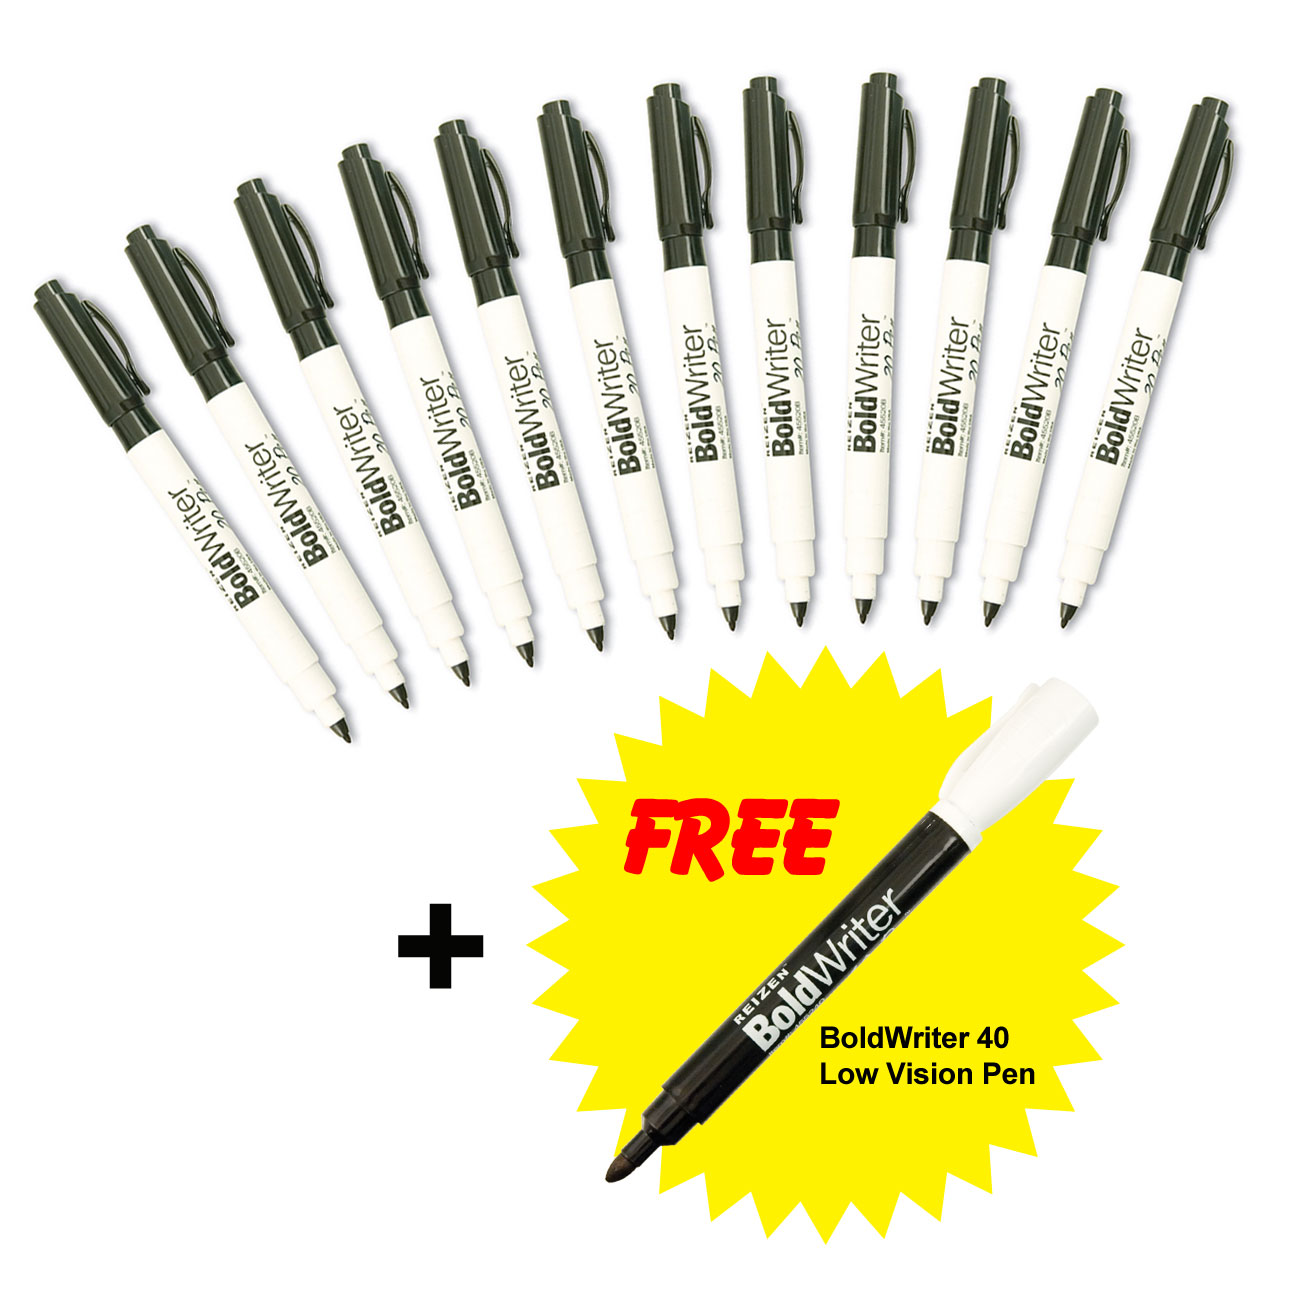 BoldWriter 20 Pen 12-Pack + FREE BoldWriter 40 Pen - Bonus Bundle